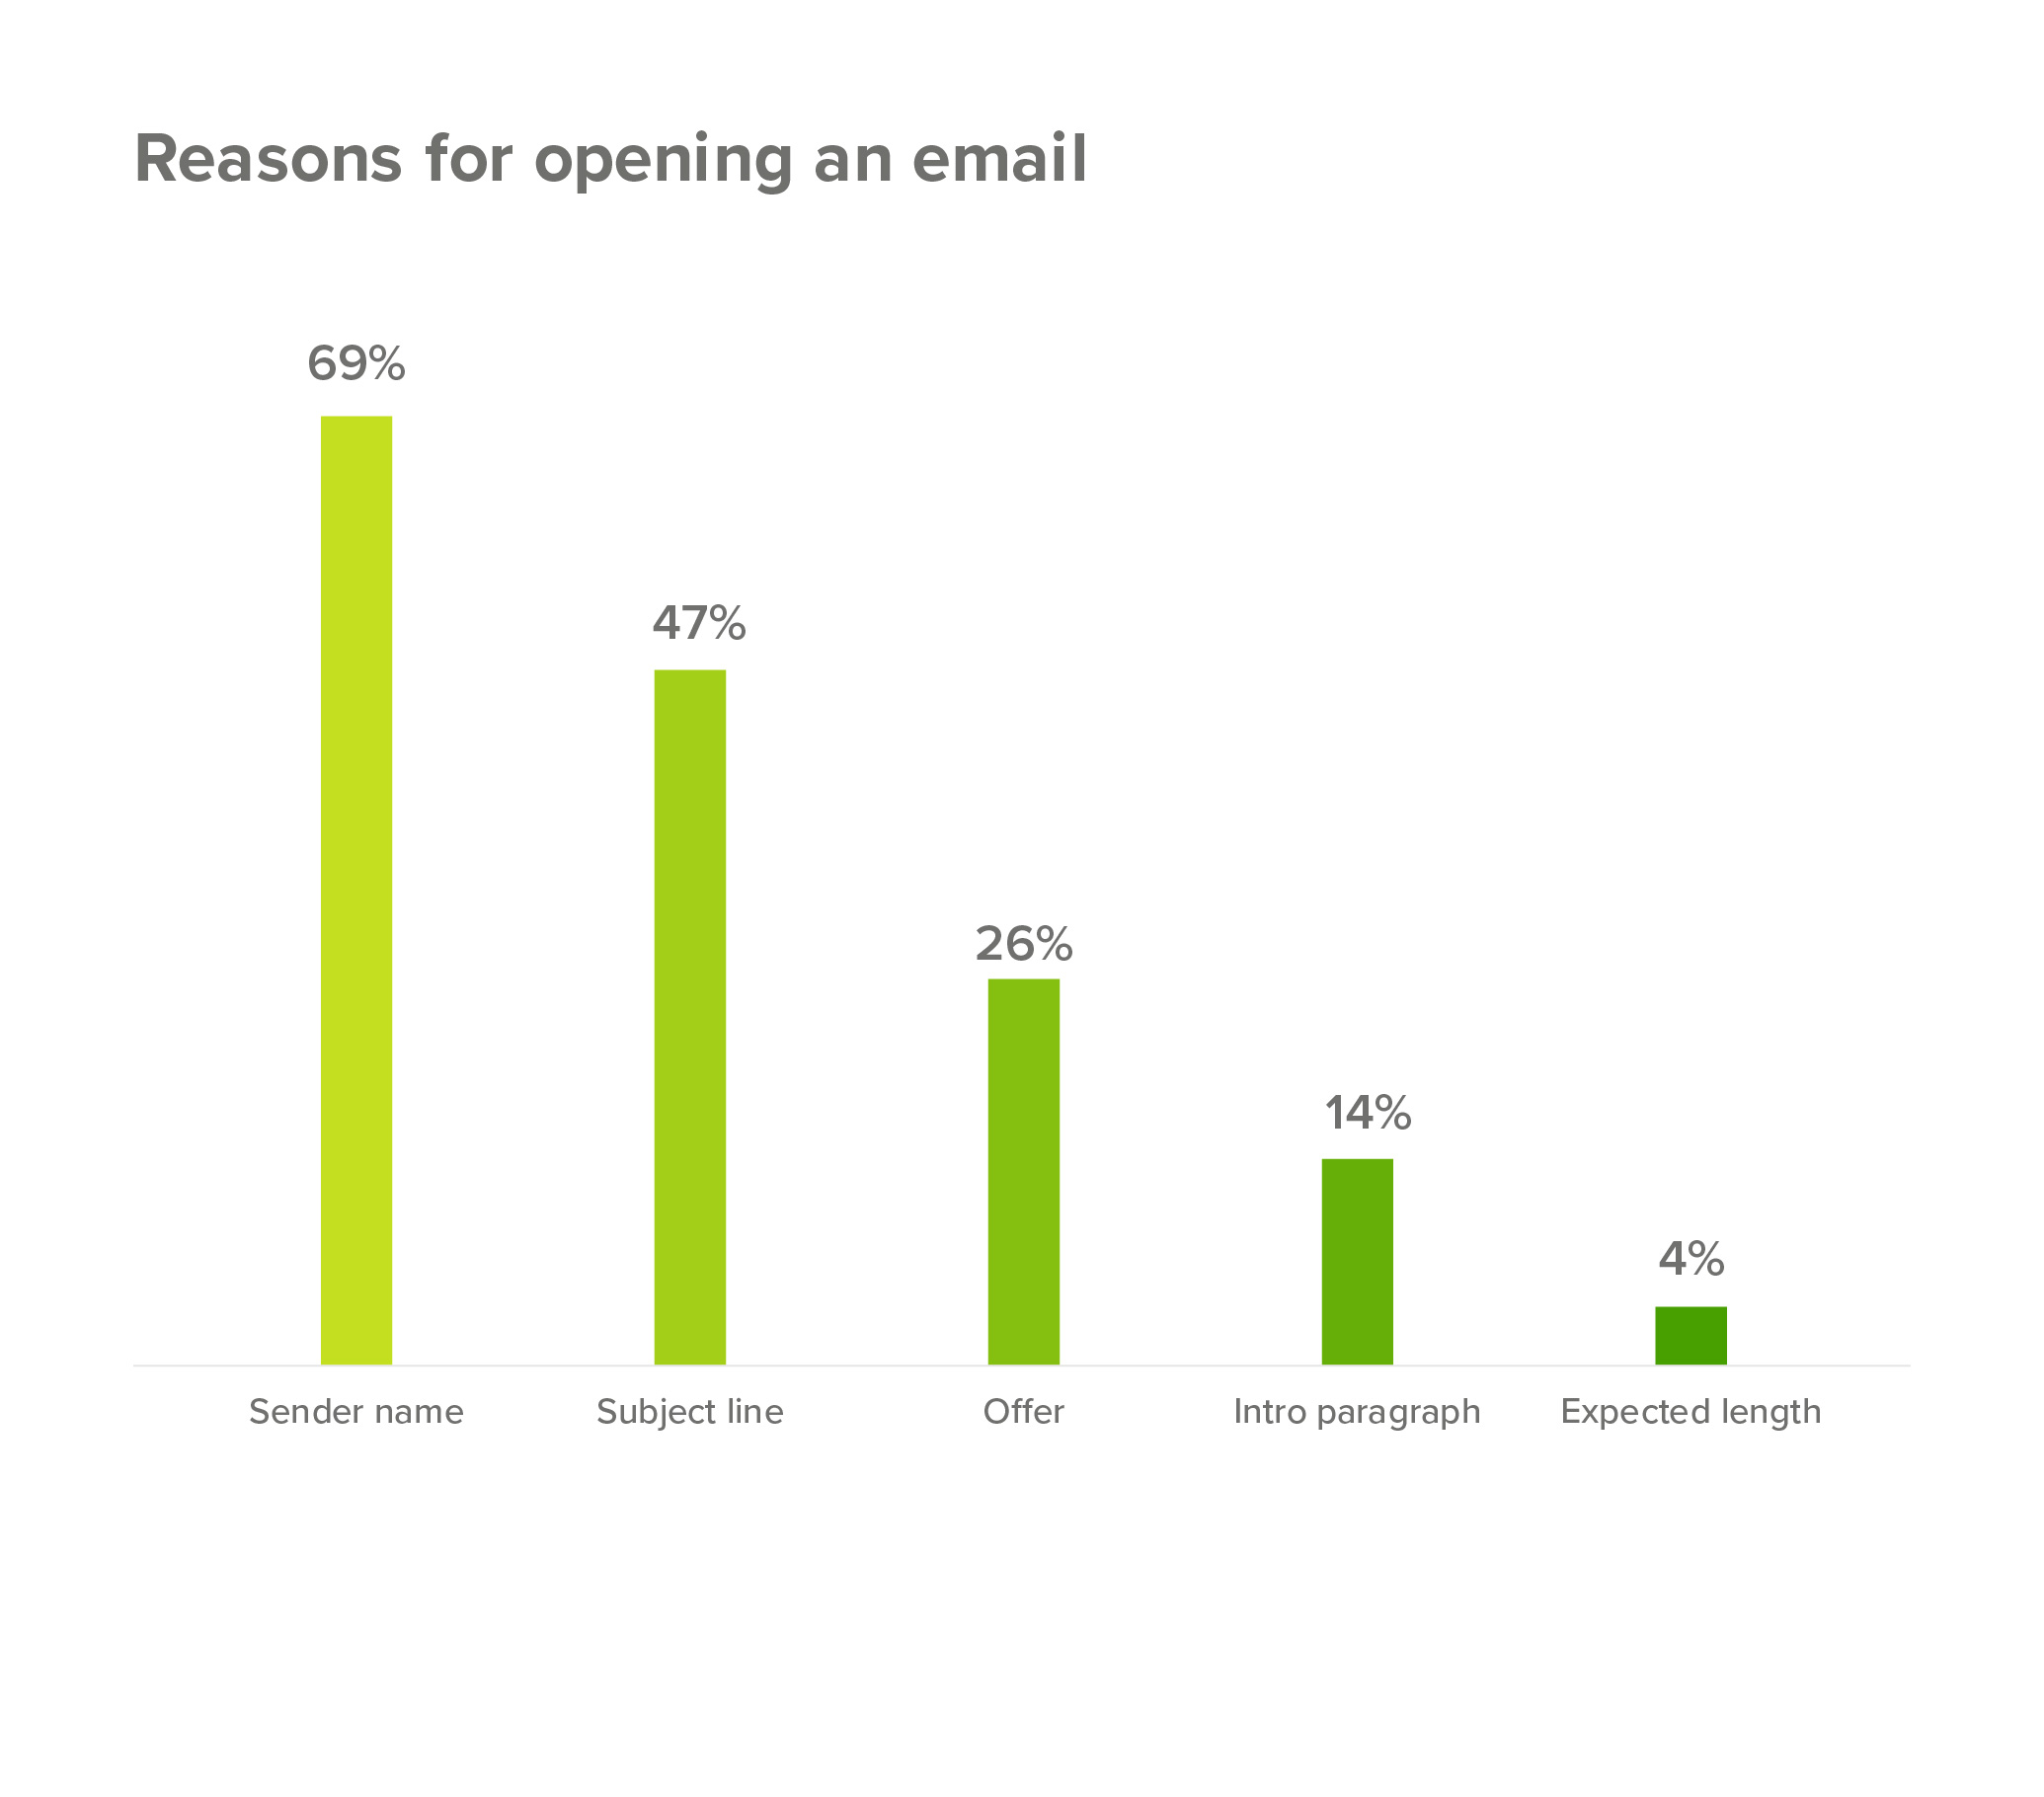 Top reasons for opening an email